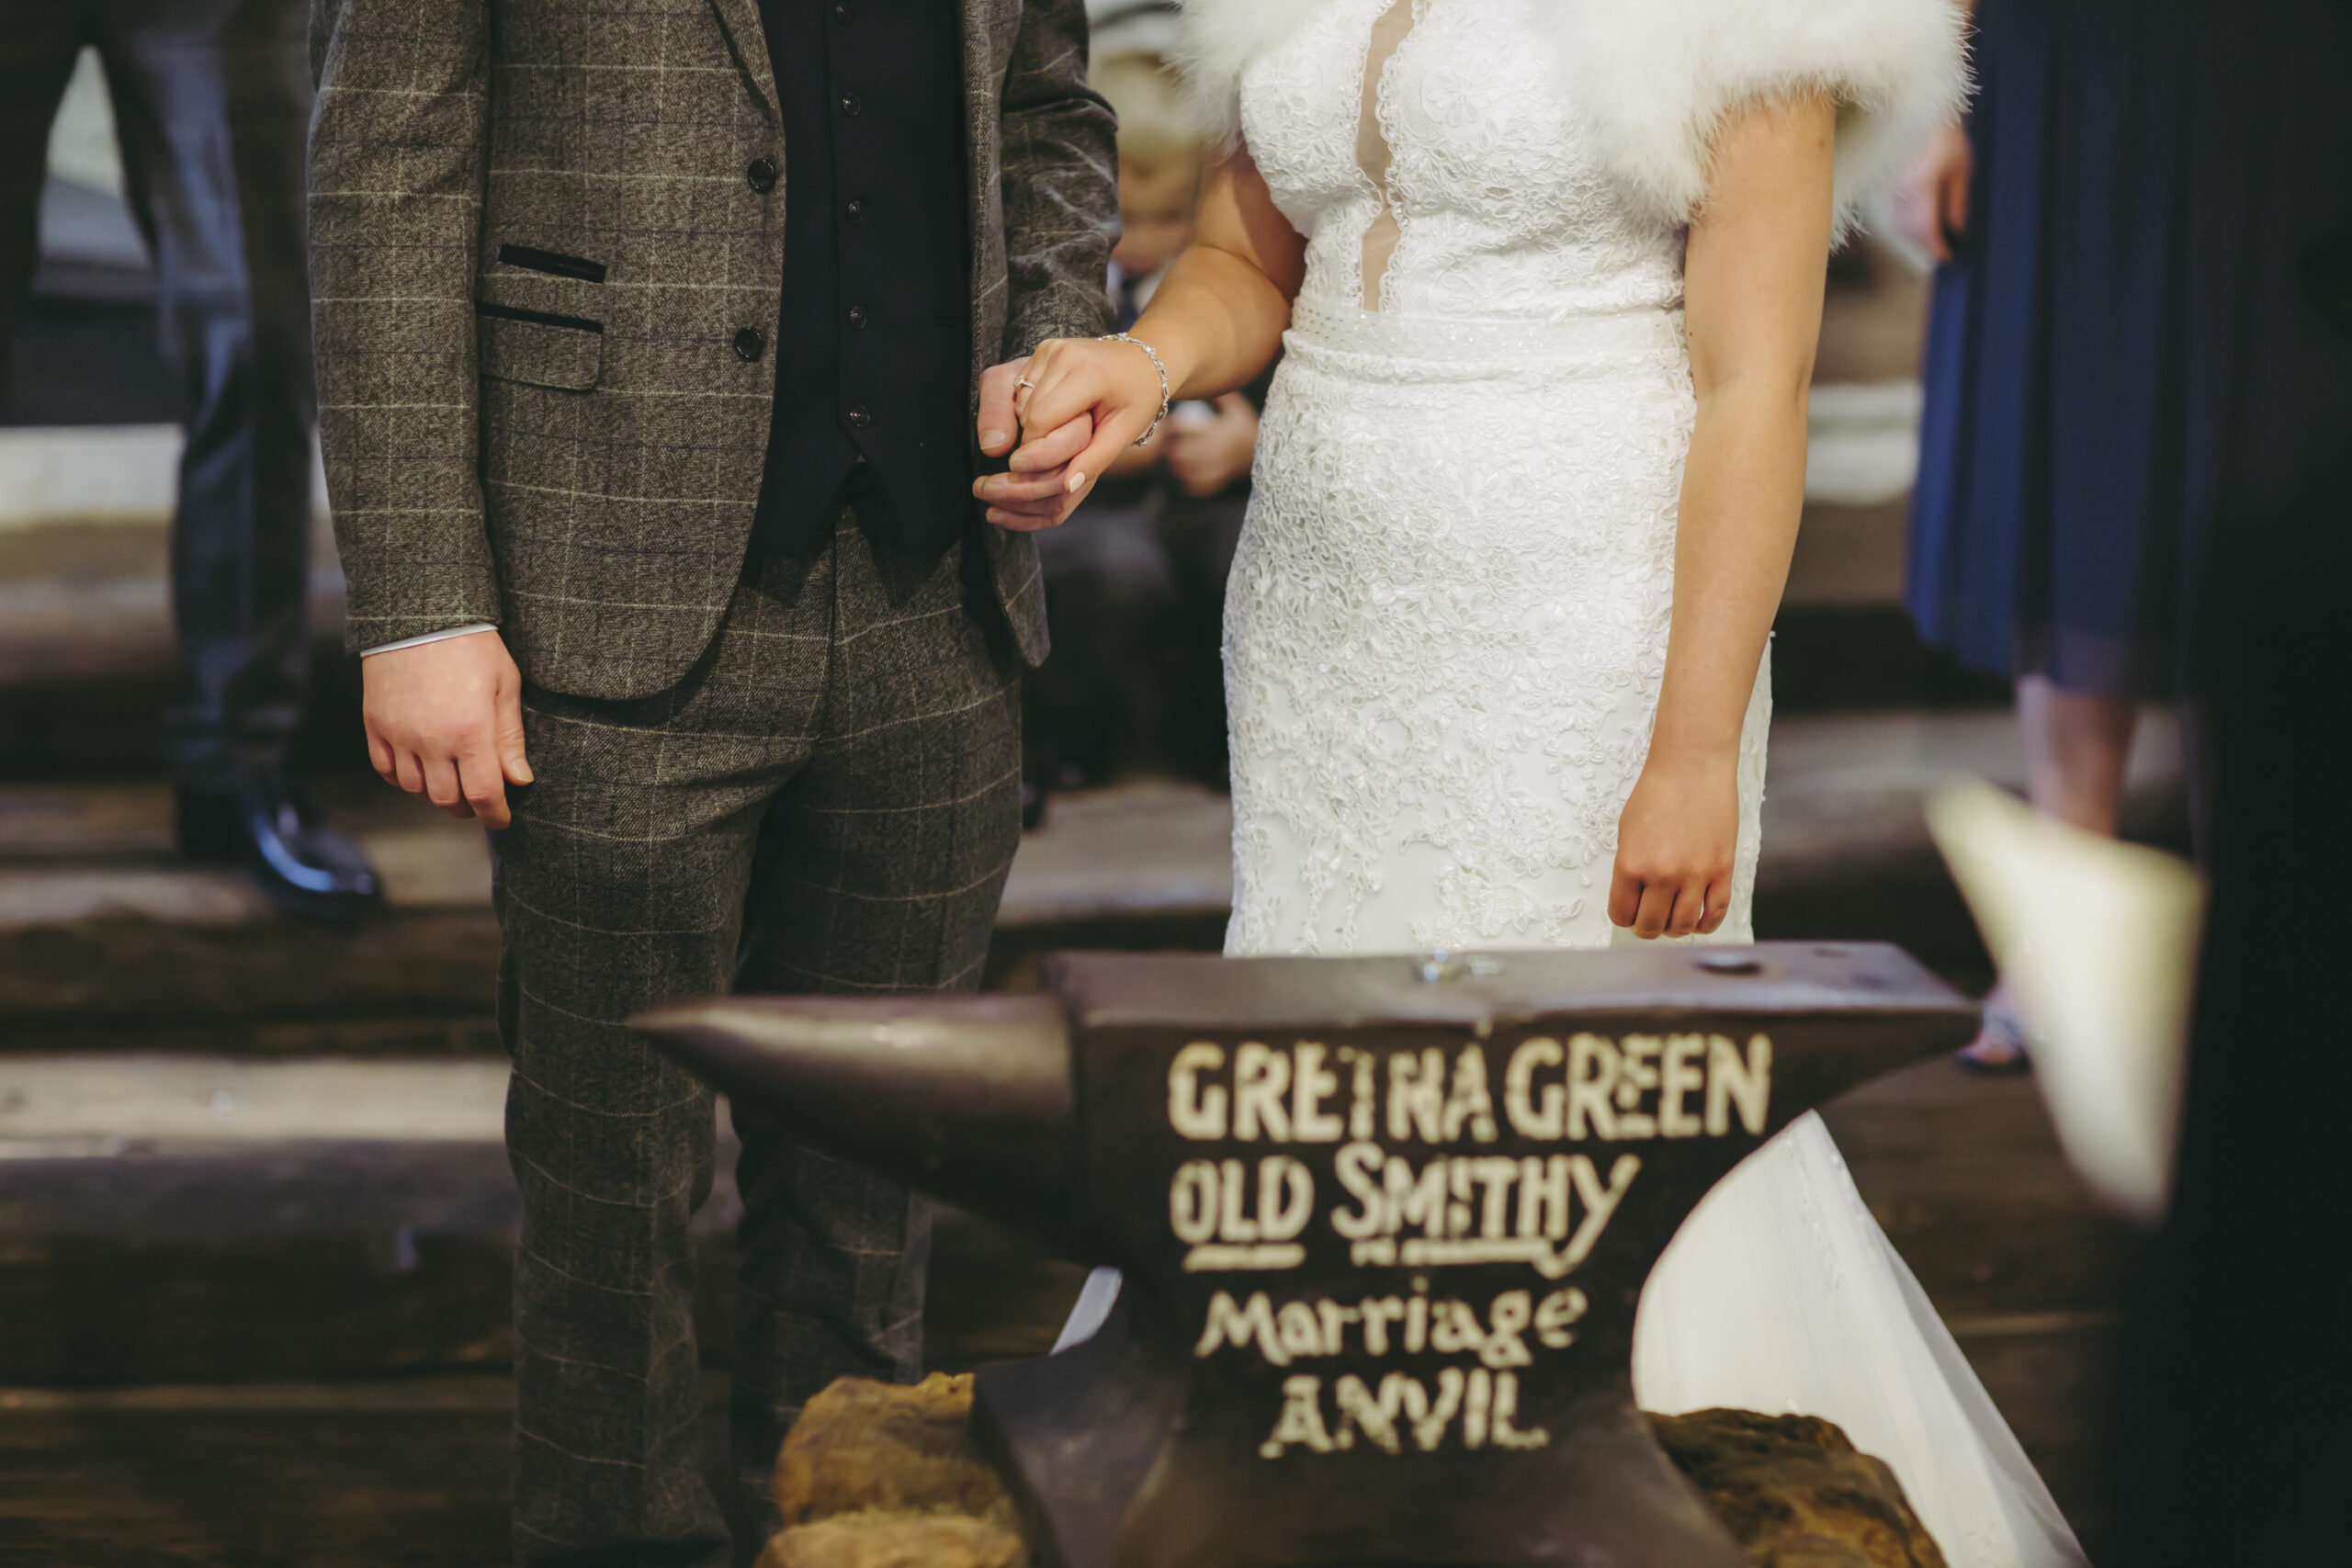 bride and groom hold hands at the gretna green old smithy marriage anvil